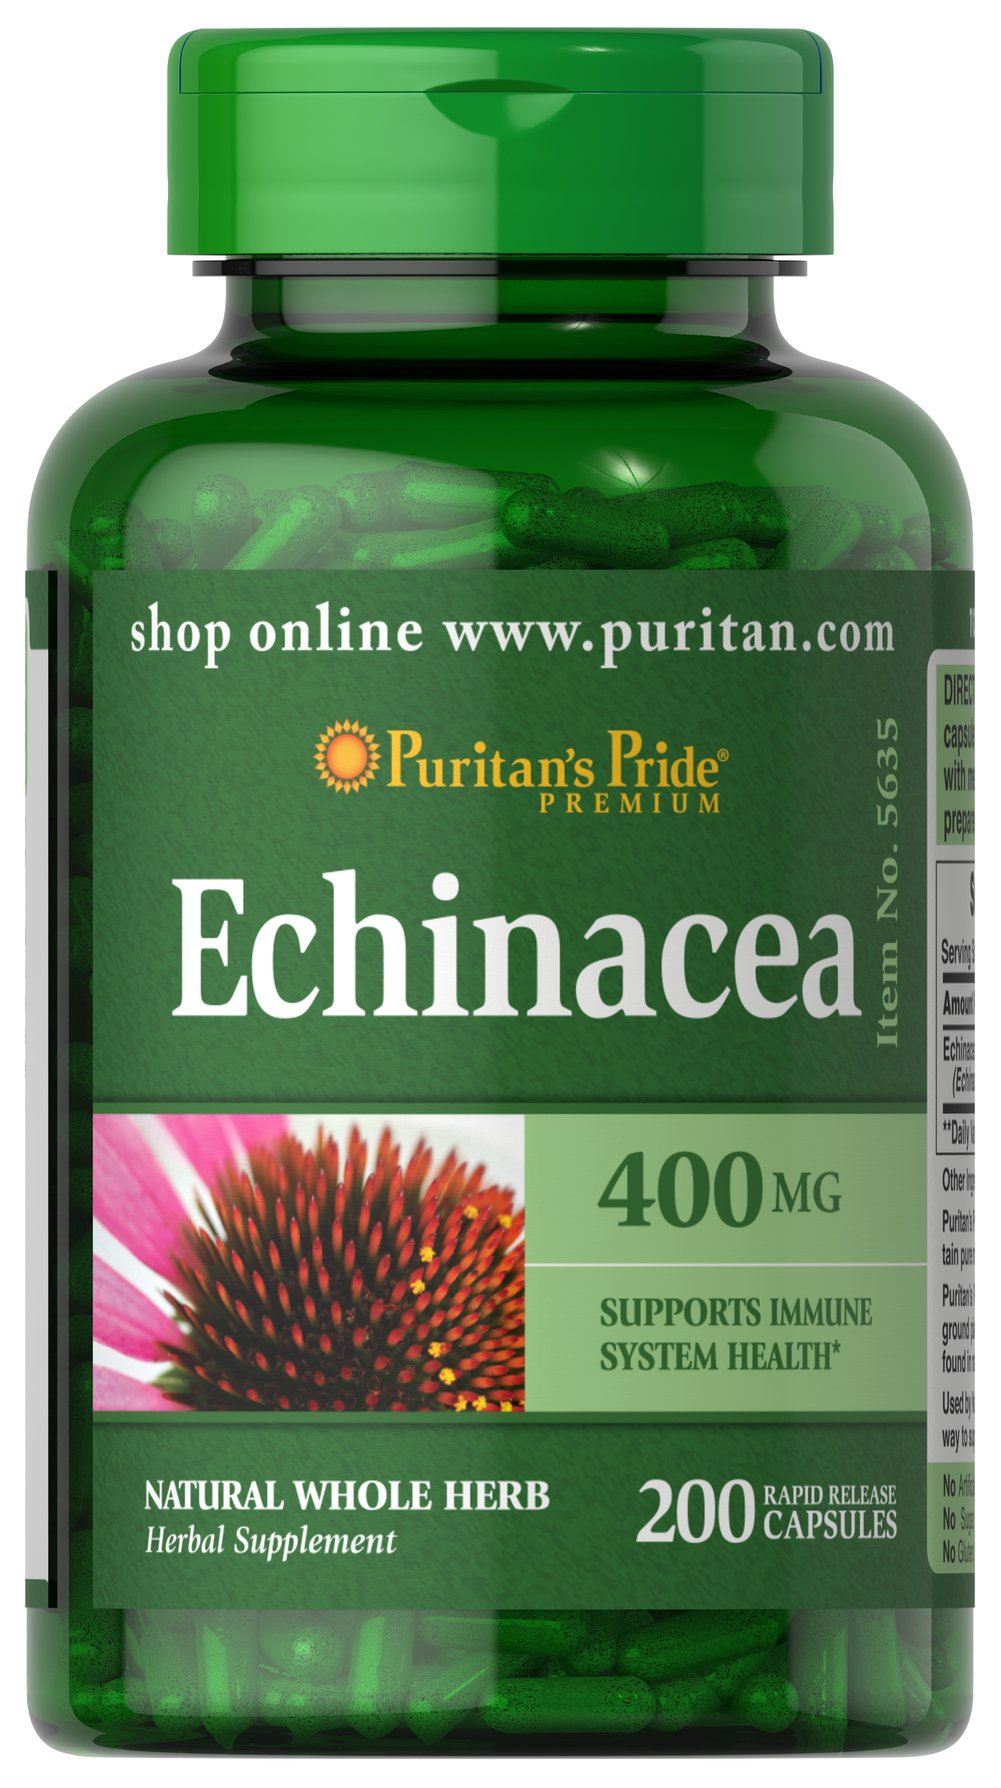 Echinacea 400 mg Thumbnail Alternate Bottle View